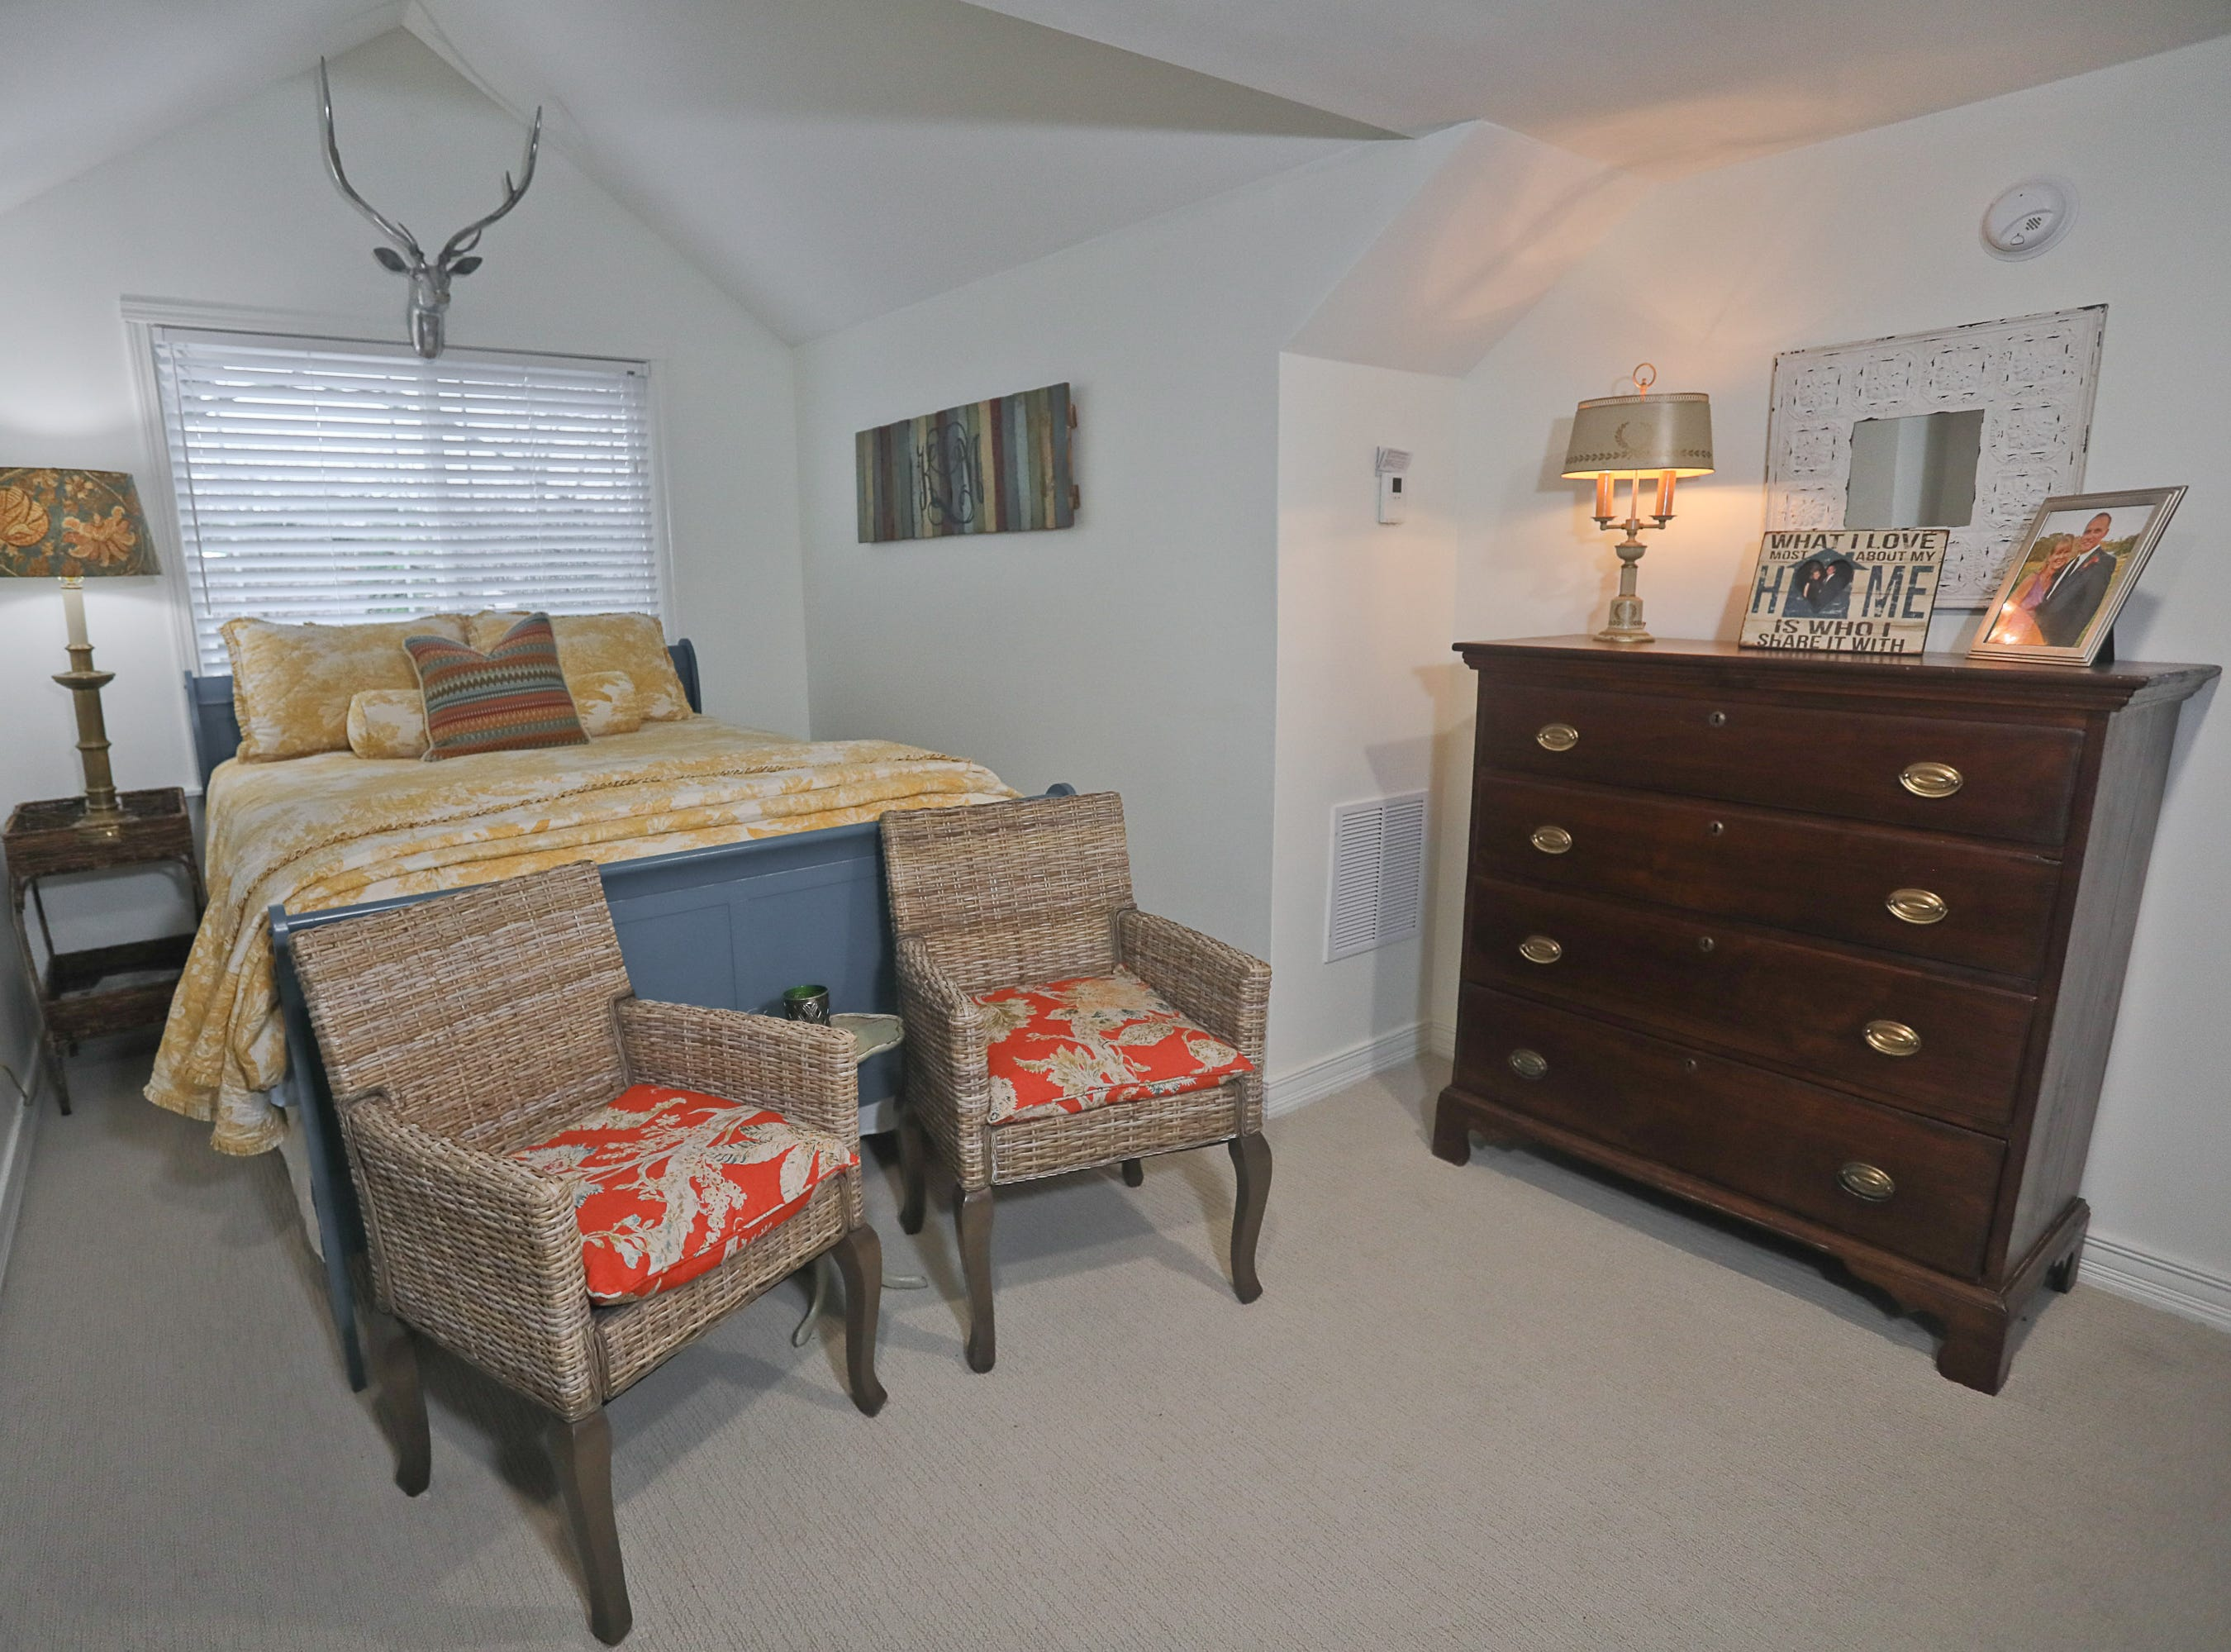 A guest bedroom at the home of Kelli Lorenzen in Louisville, KY. Feb. 12, 2019